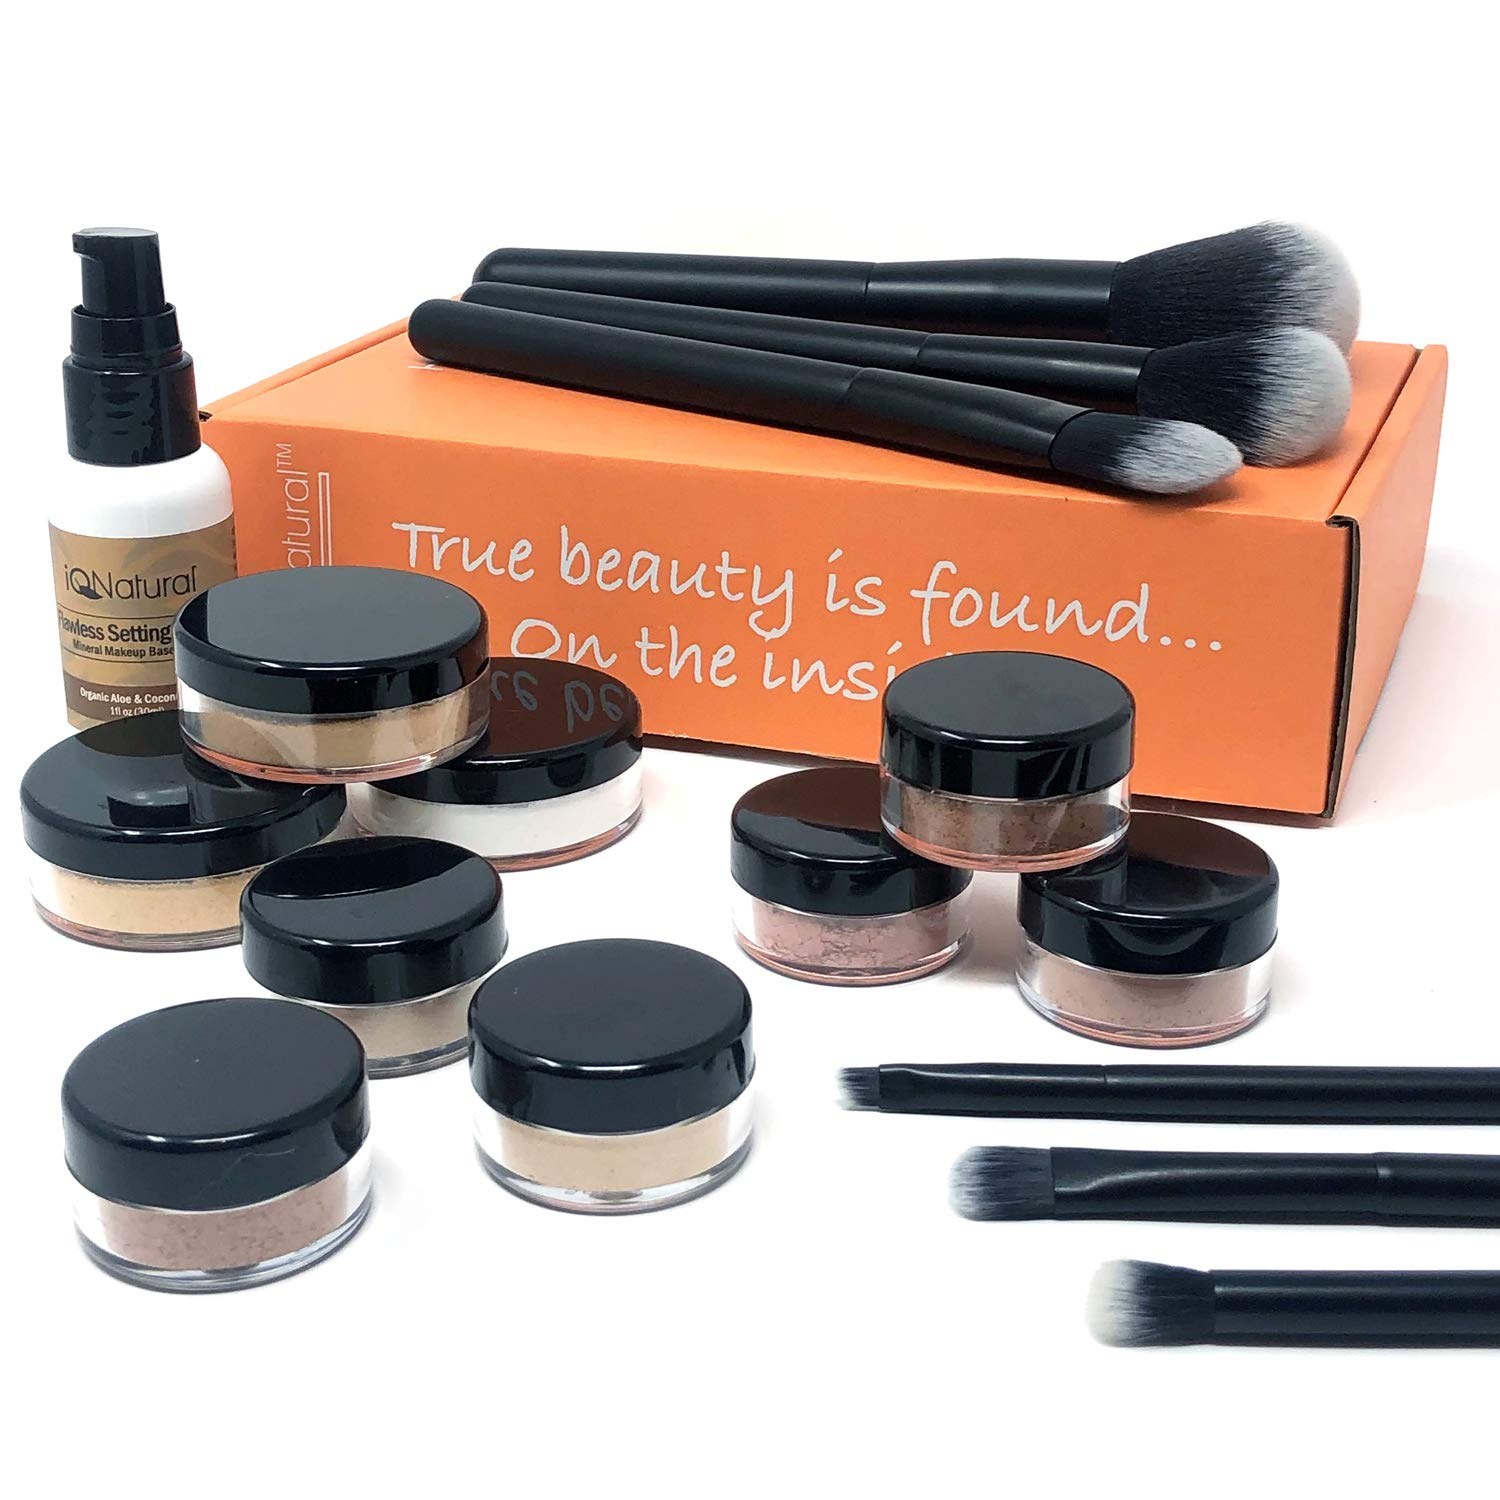 Premium 16 Piece Large Mineral Makeup Kit (Select Shade) - Concealer, Bronzer, Eye Shadow, Setting Powder, 2 Full Size Mineral Foundation, Primer - Create A Natural Flawless Look by iQ Natural (Image #1)